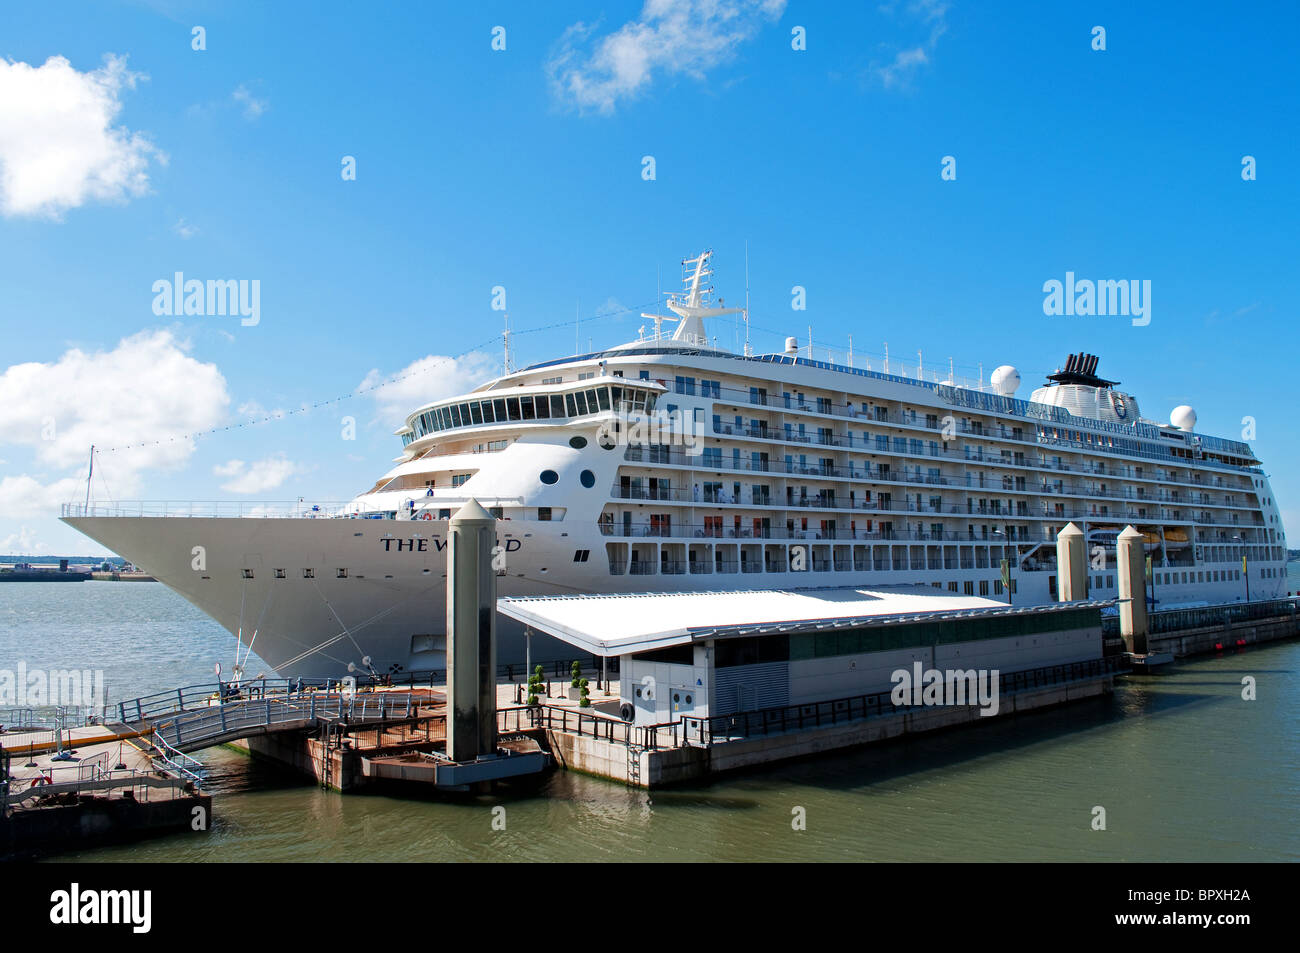 ' The World ' luxury cruise liner in port at Liverpool, UK - Stock Image